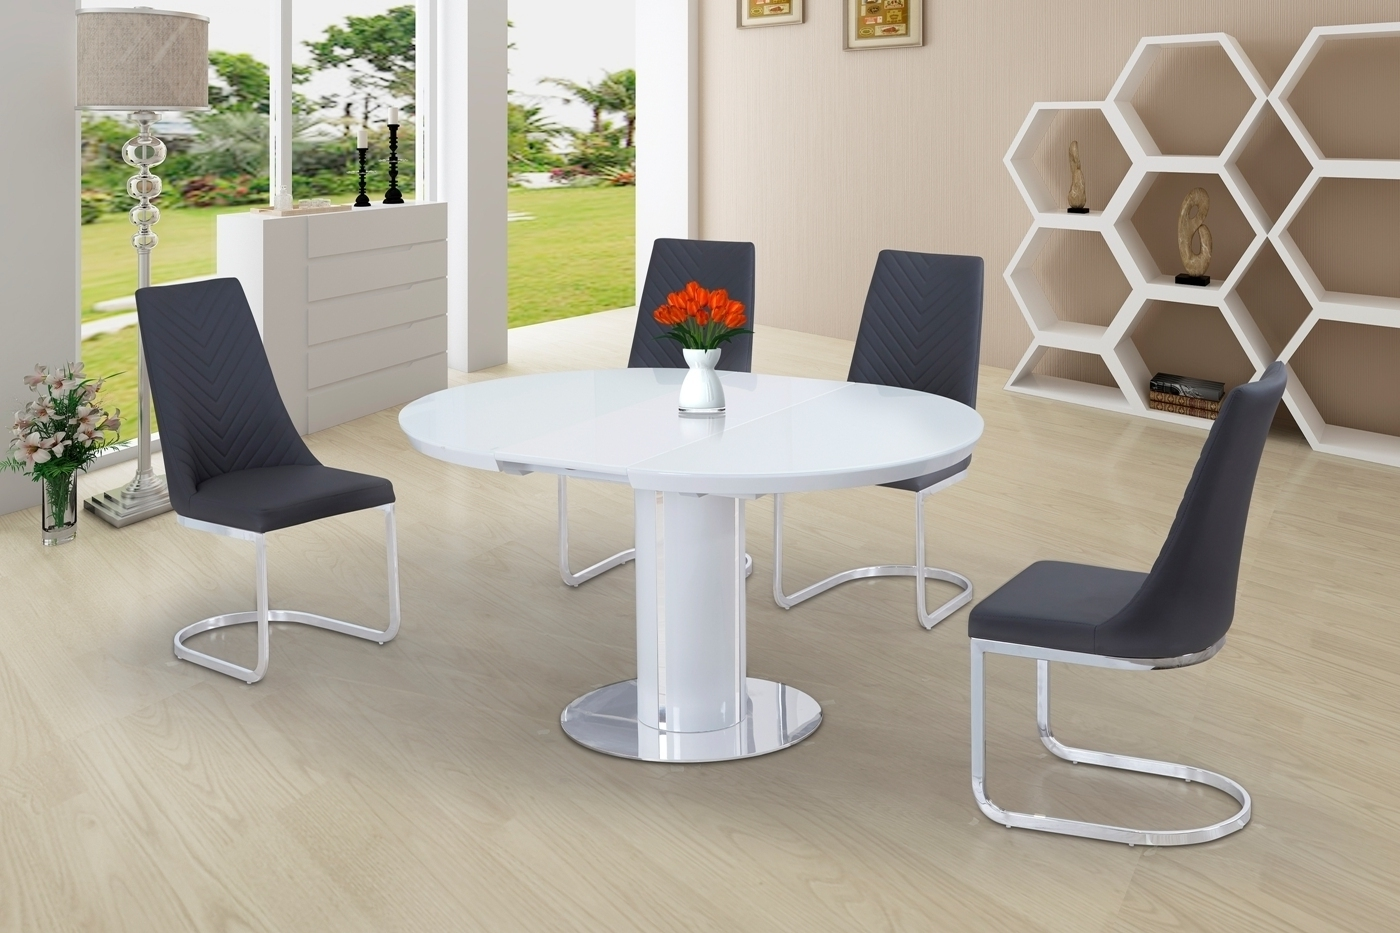 Most Recent White High Gloss Dining Chairs Throughout Round White Glass High Gloss Dining Table And 6 Grey Chairs (View 22 of 25)